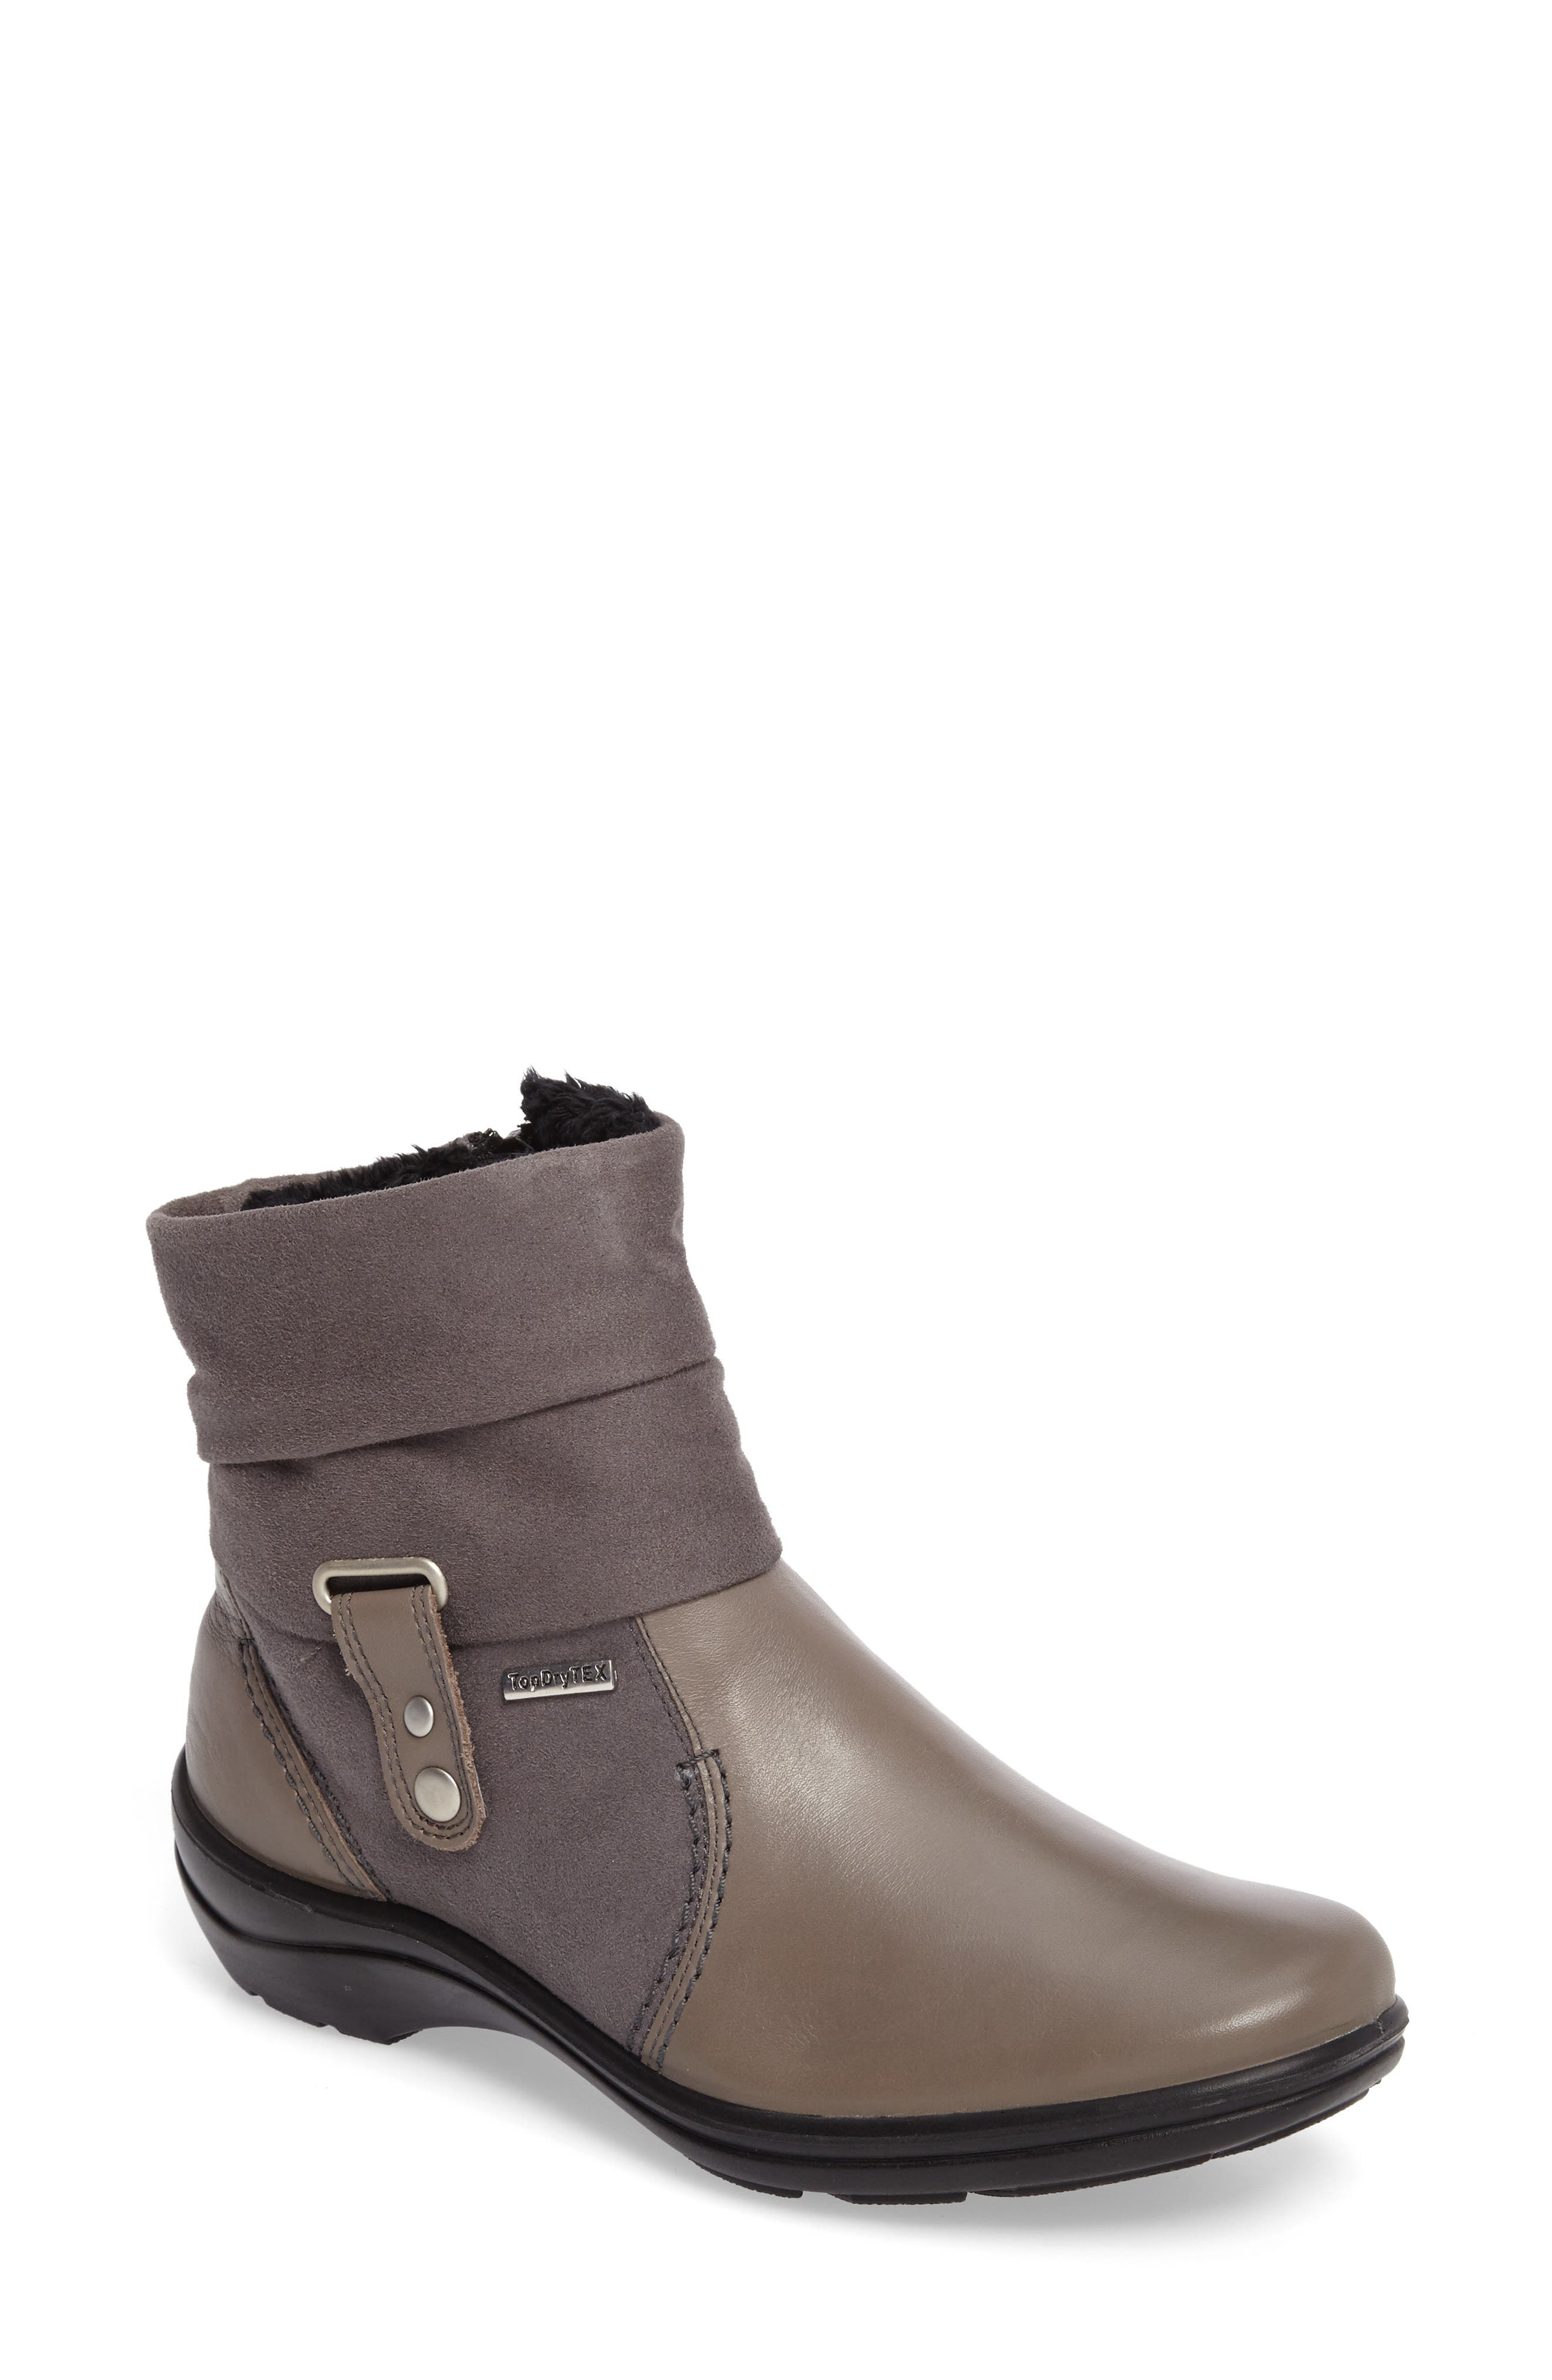 'Cassie 12' Boot,                             Main thumbnail 1, color,                             Grey Leather